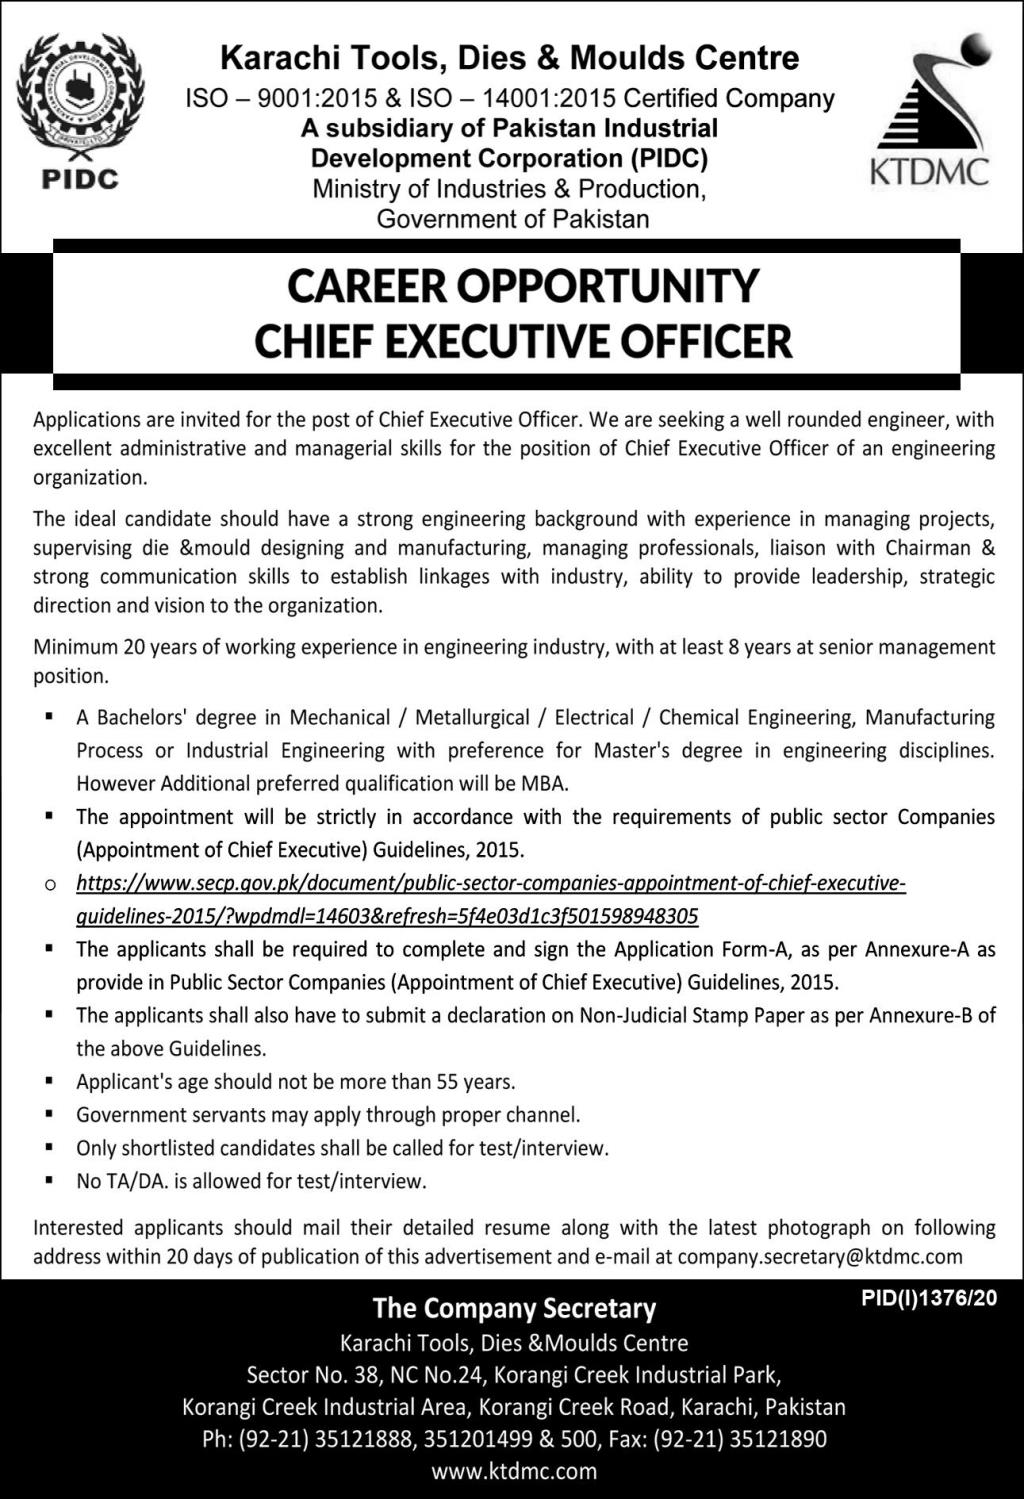 Karachi Tools Dies & Moulds Centre KTDMC Jobs September 2020